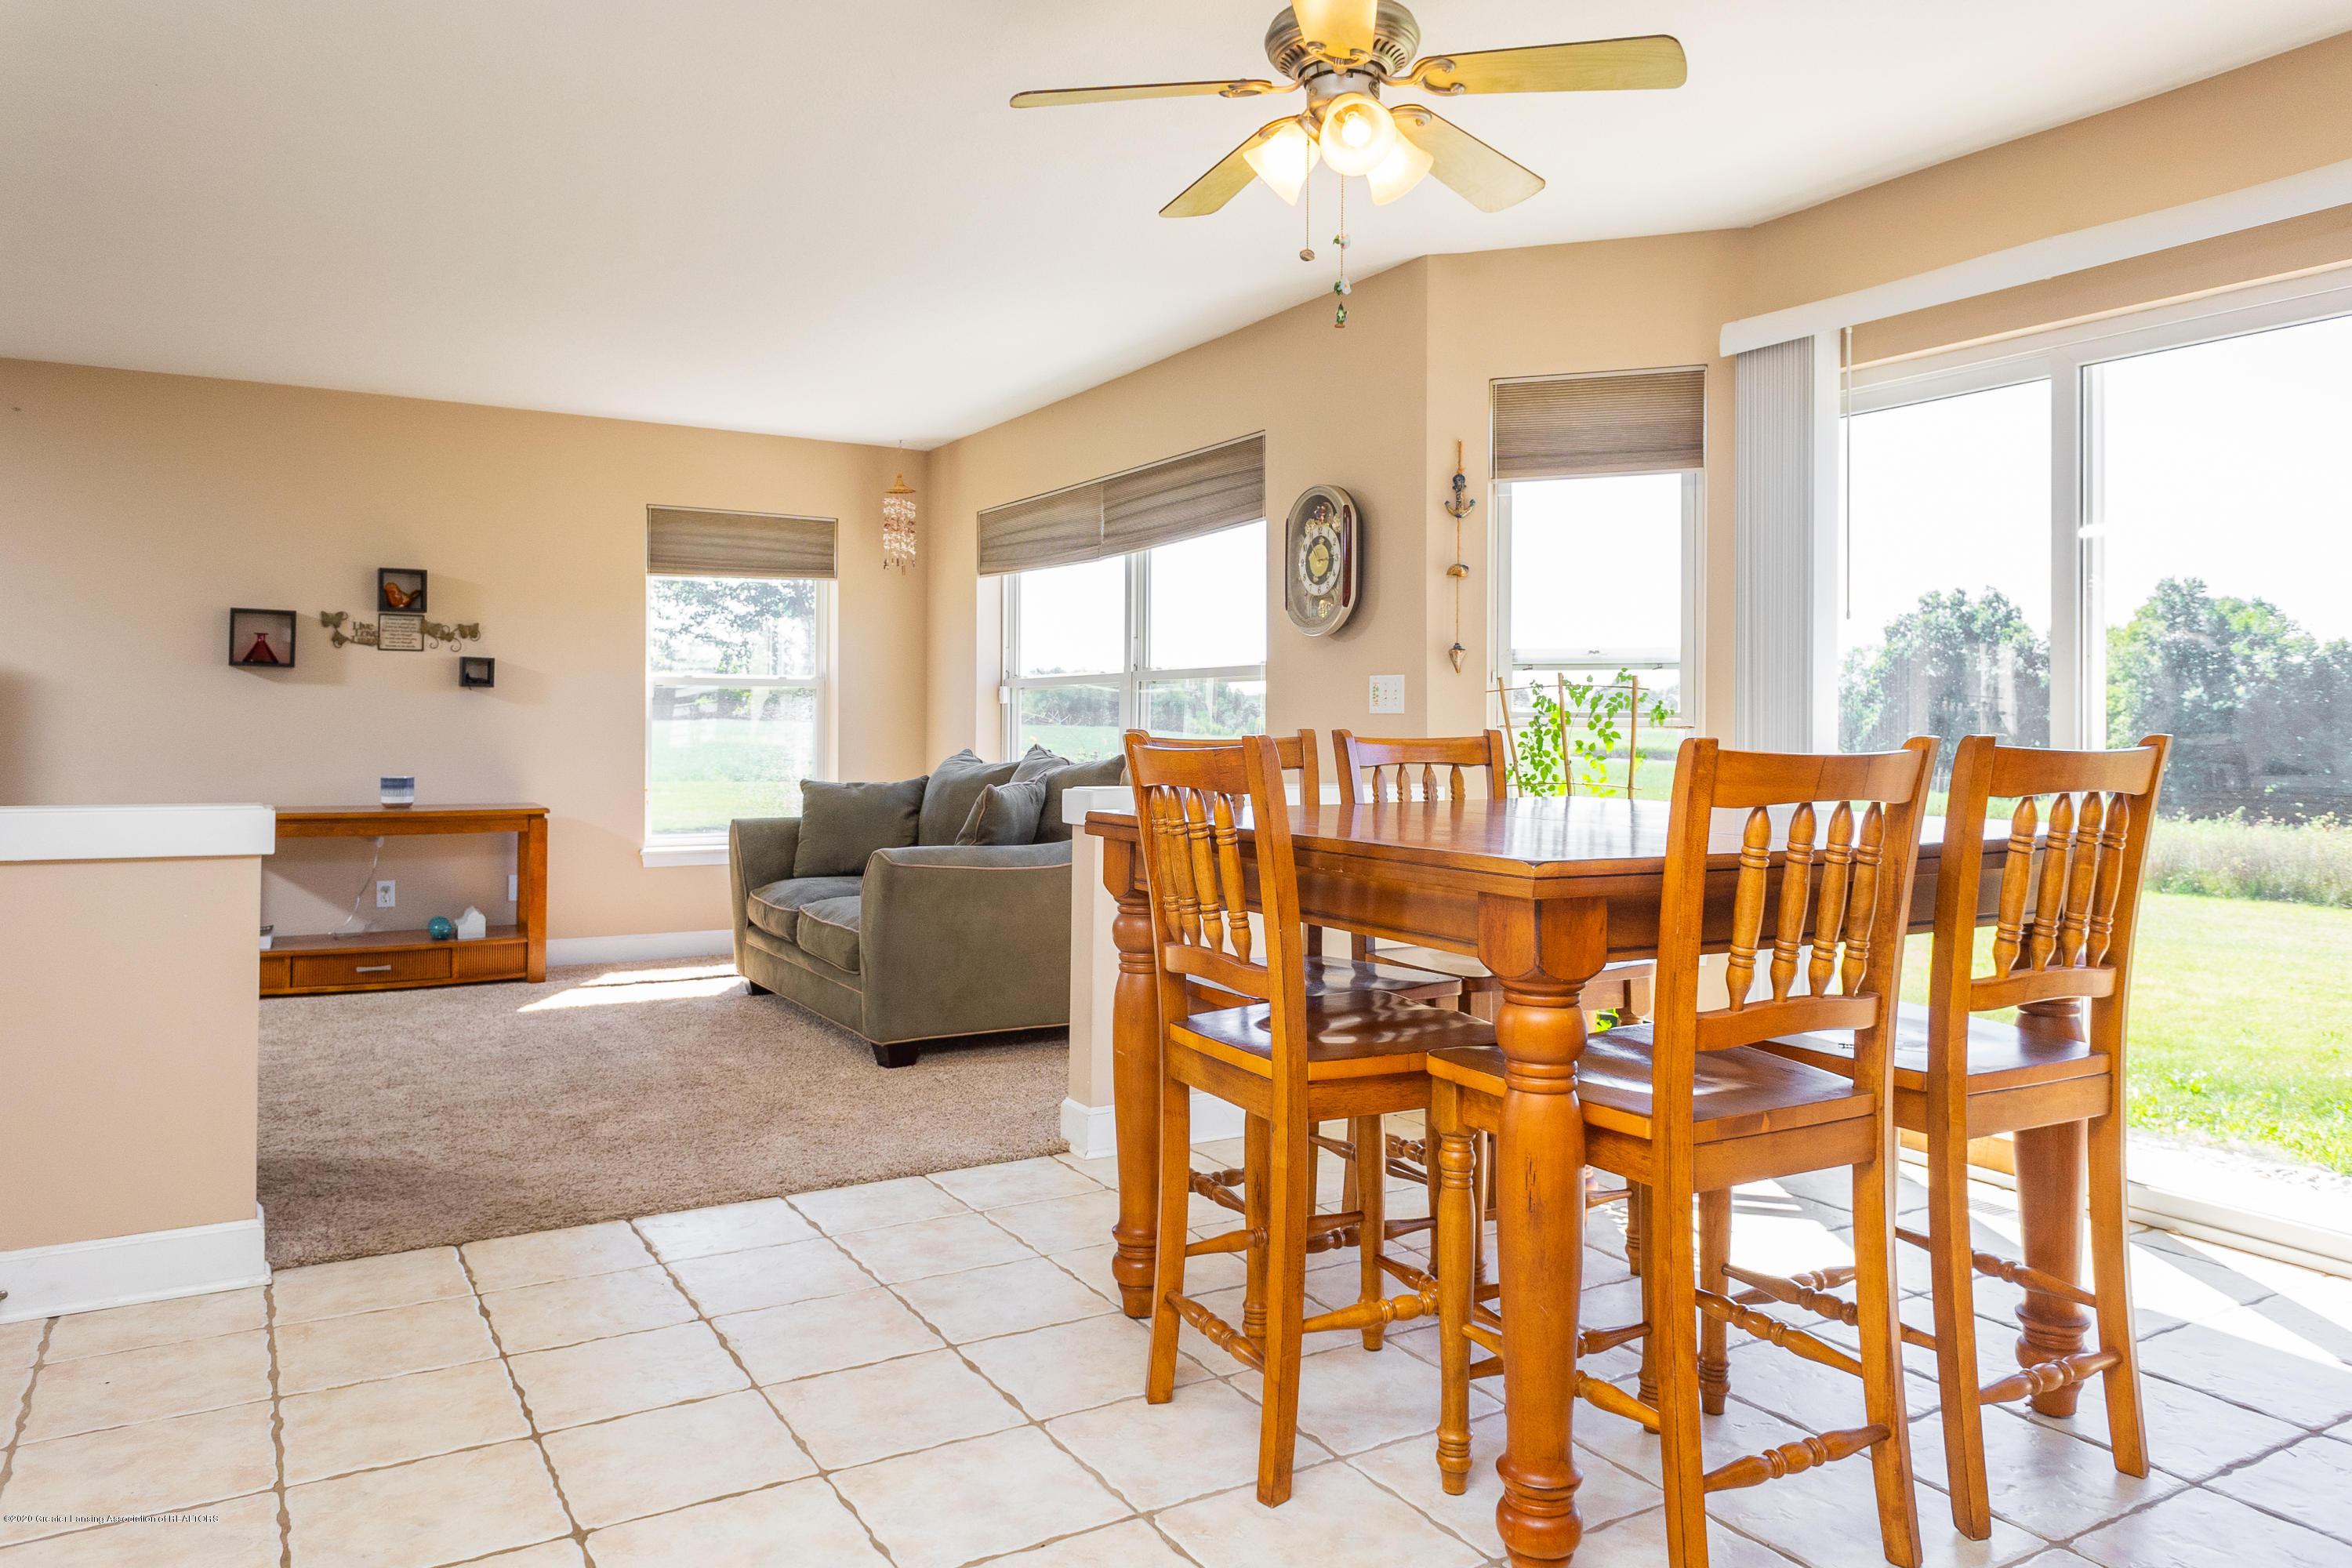 7198 Eagle Pass Dr - 7198 - Dining Living - 15